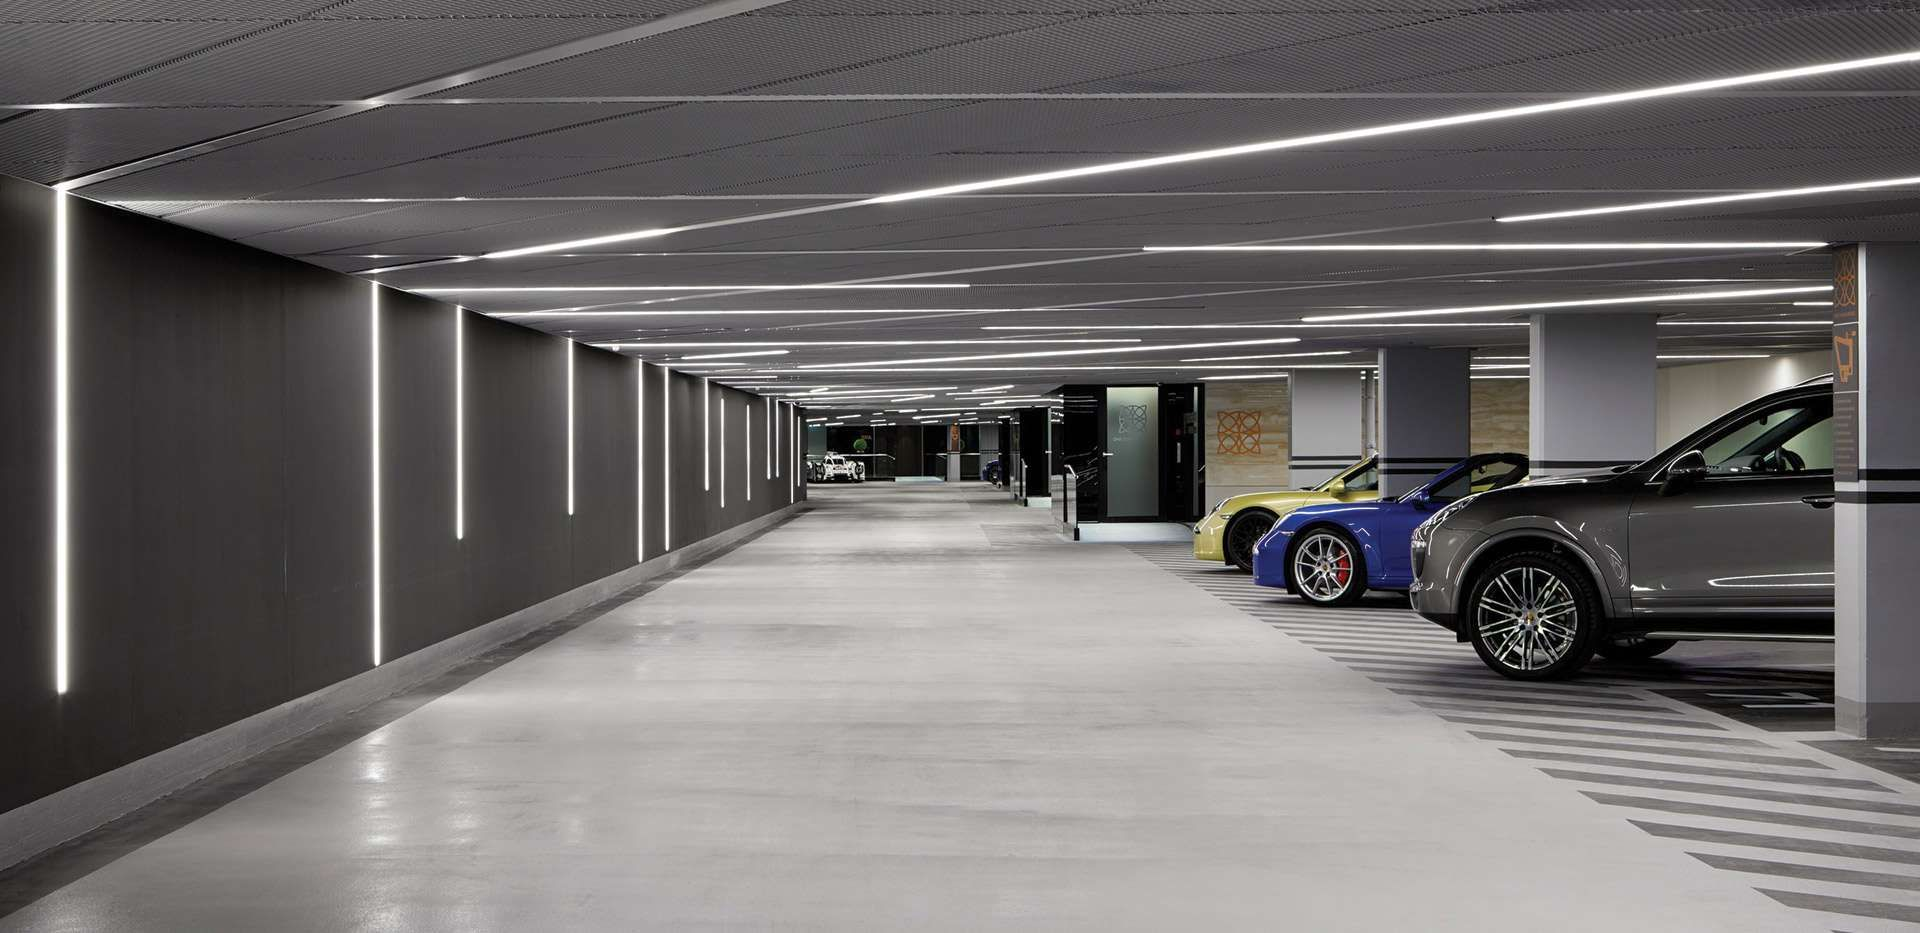 parking nexus assures the highest order of safety for your car. we